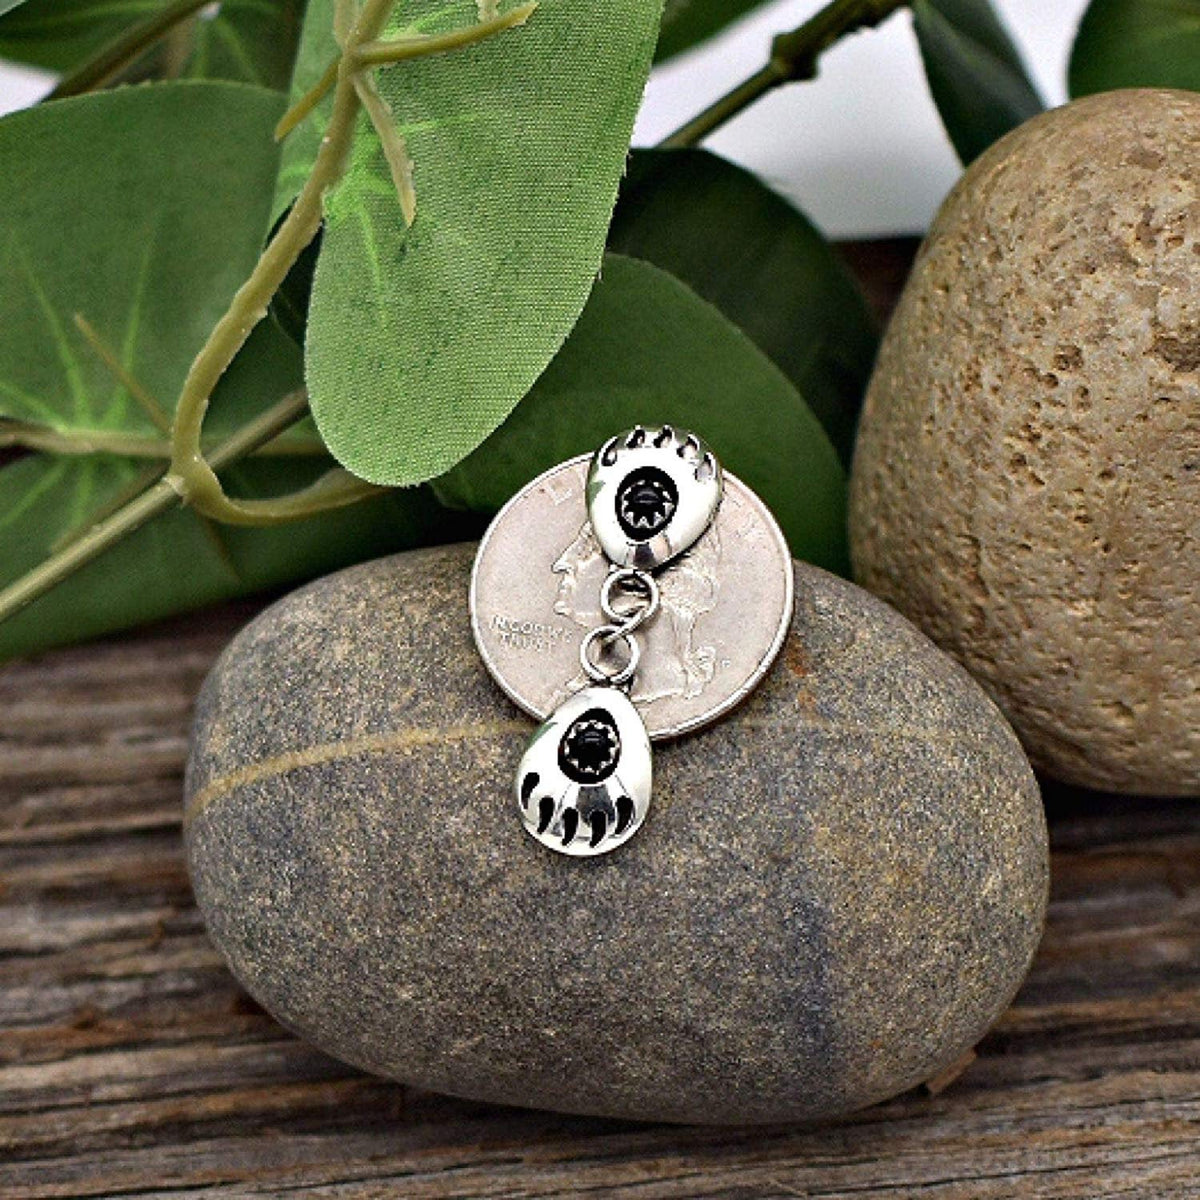 Genuine Black Onyx Double Bear Paw Earrings, 925 Sterling Silver, Native American USA Handmade, Nickle Free